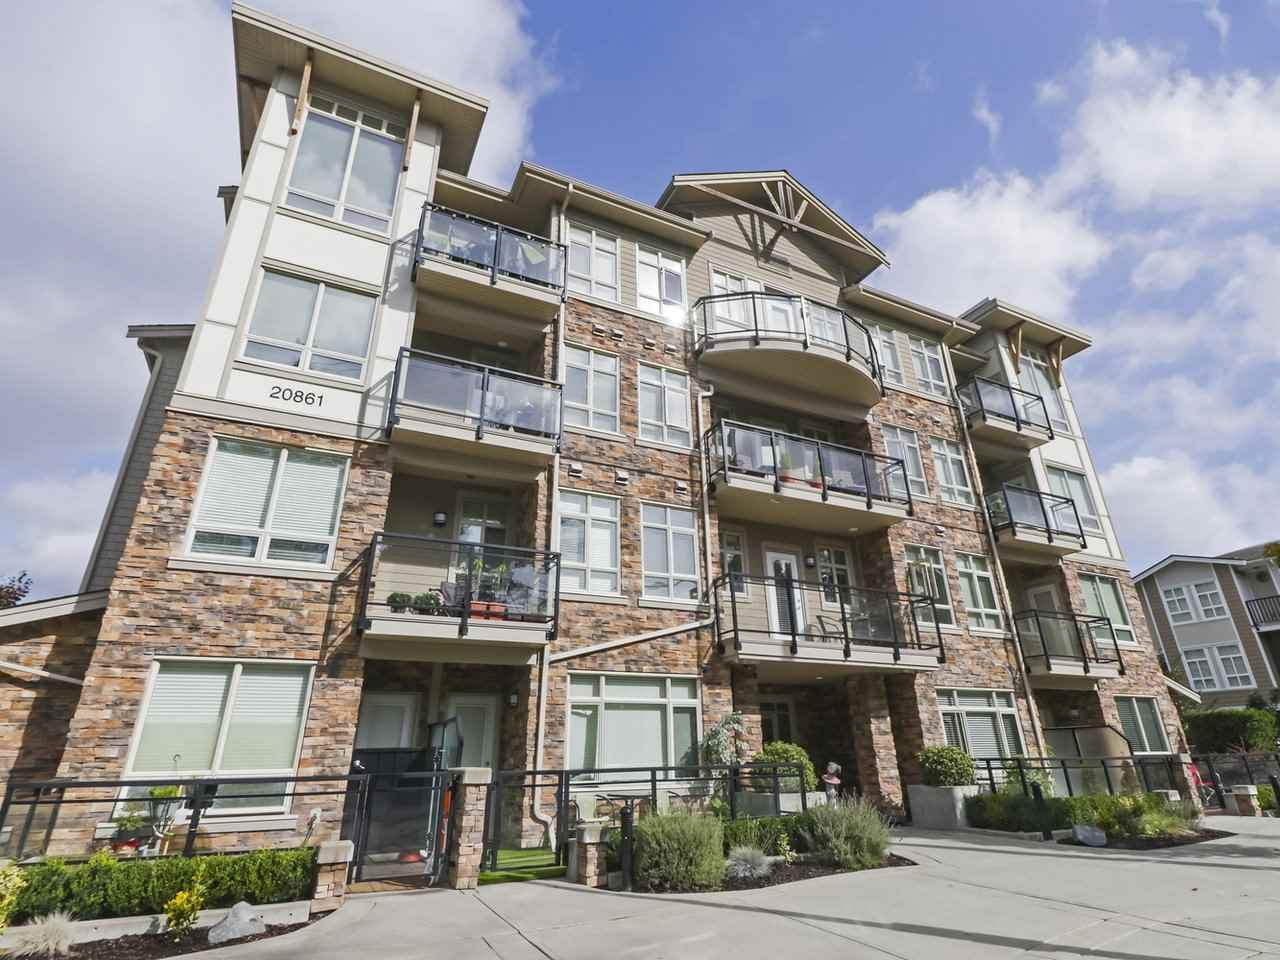 "Main Photo: 210 20861 83 Avenue in Langley: Willoughby Heights Condo for sale in ""ATHENRY GATE"" : MLS®# R2408736"